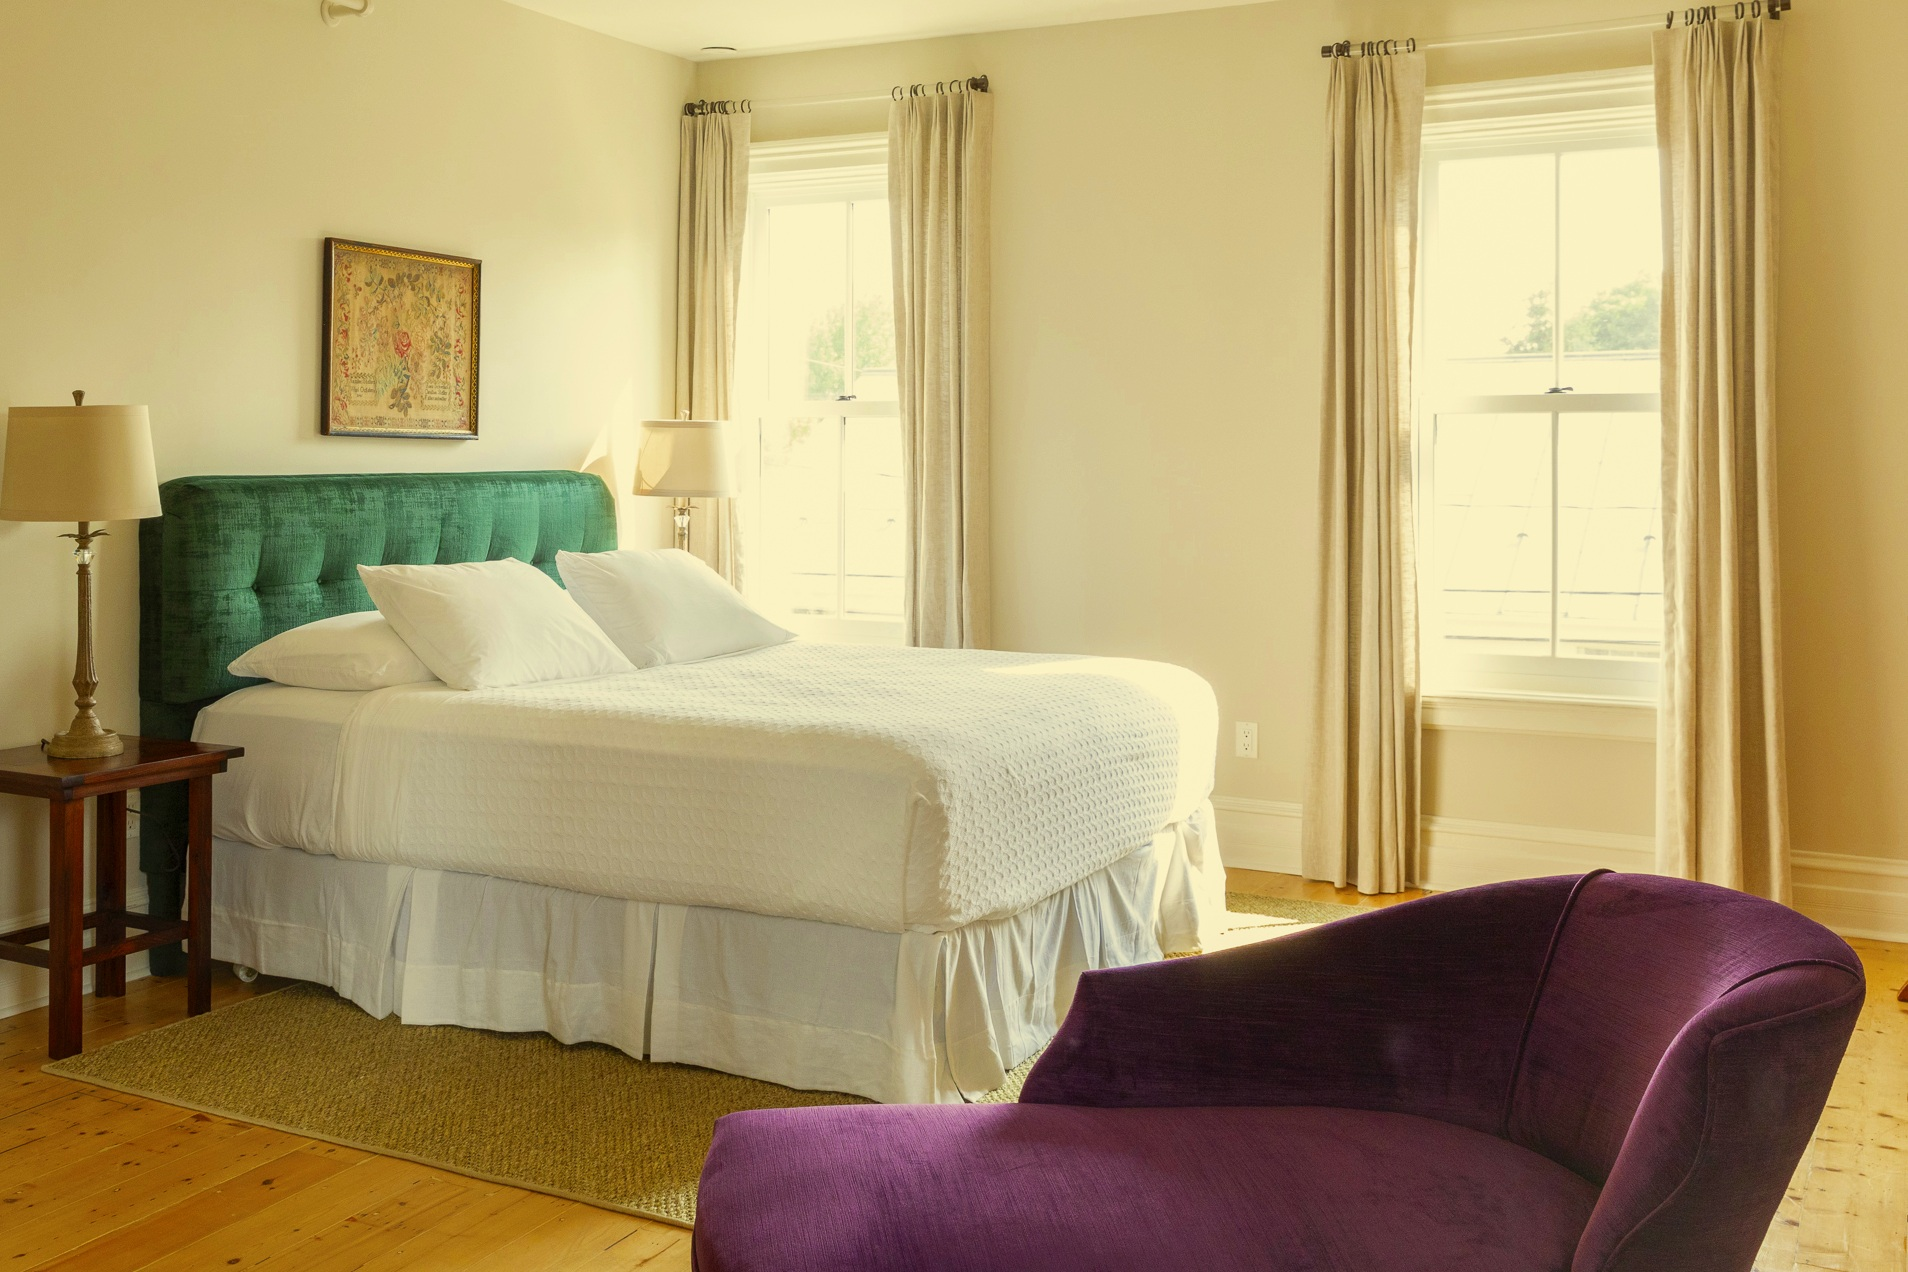 Rooms - Relax in our luxurious bedding, robes and slippers, custom amenities, and full size tubs.